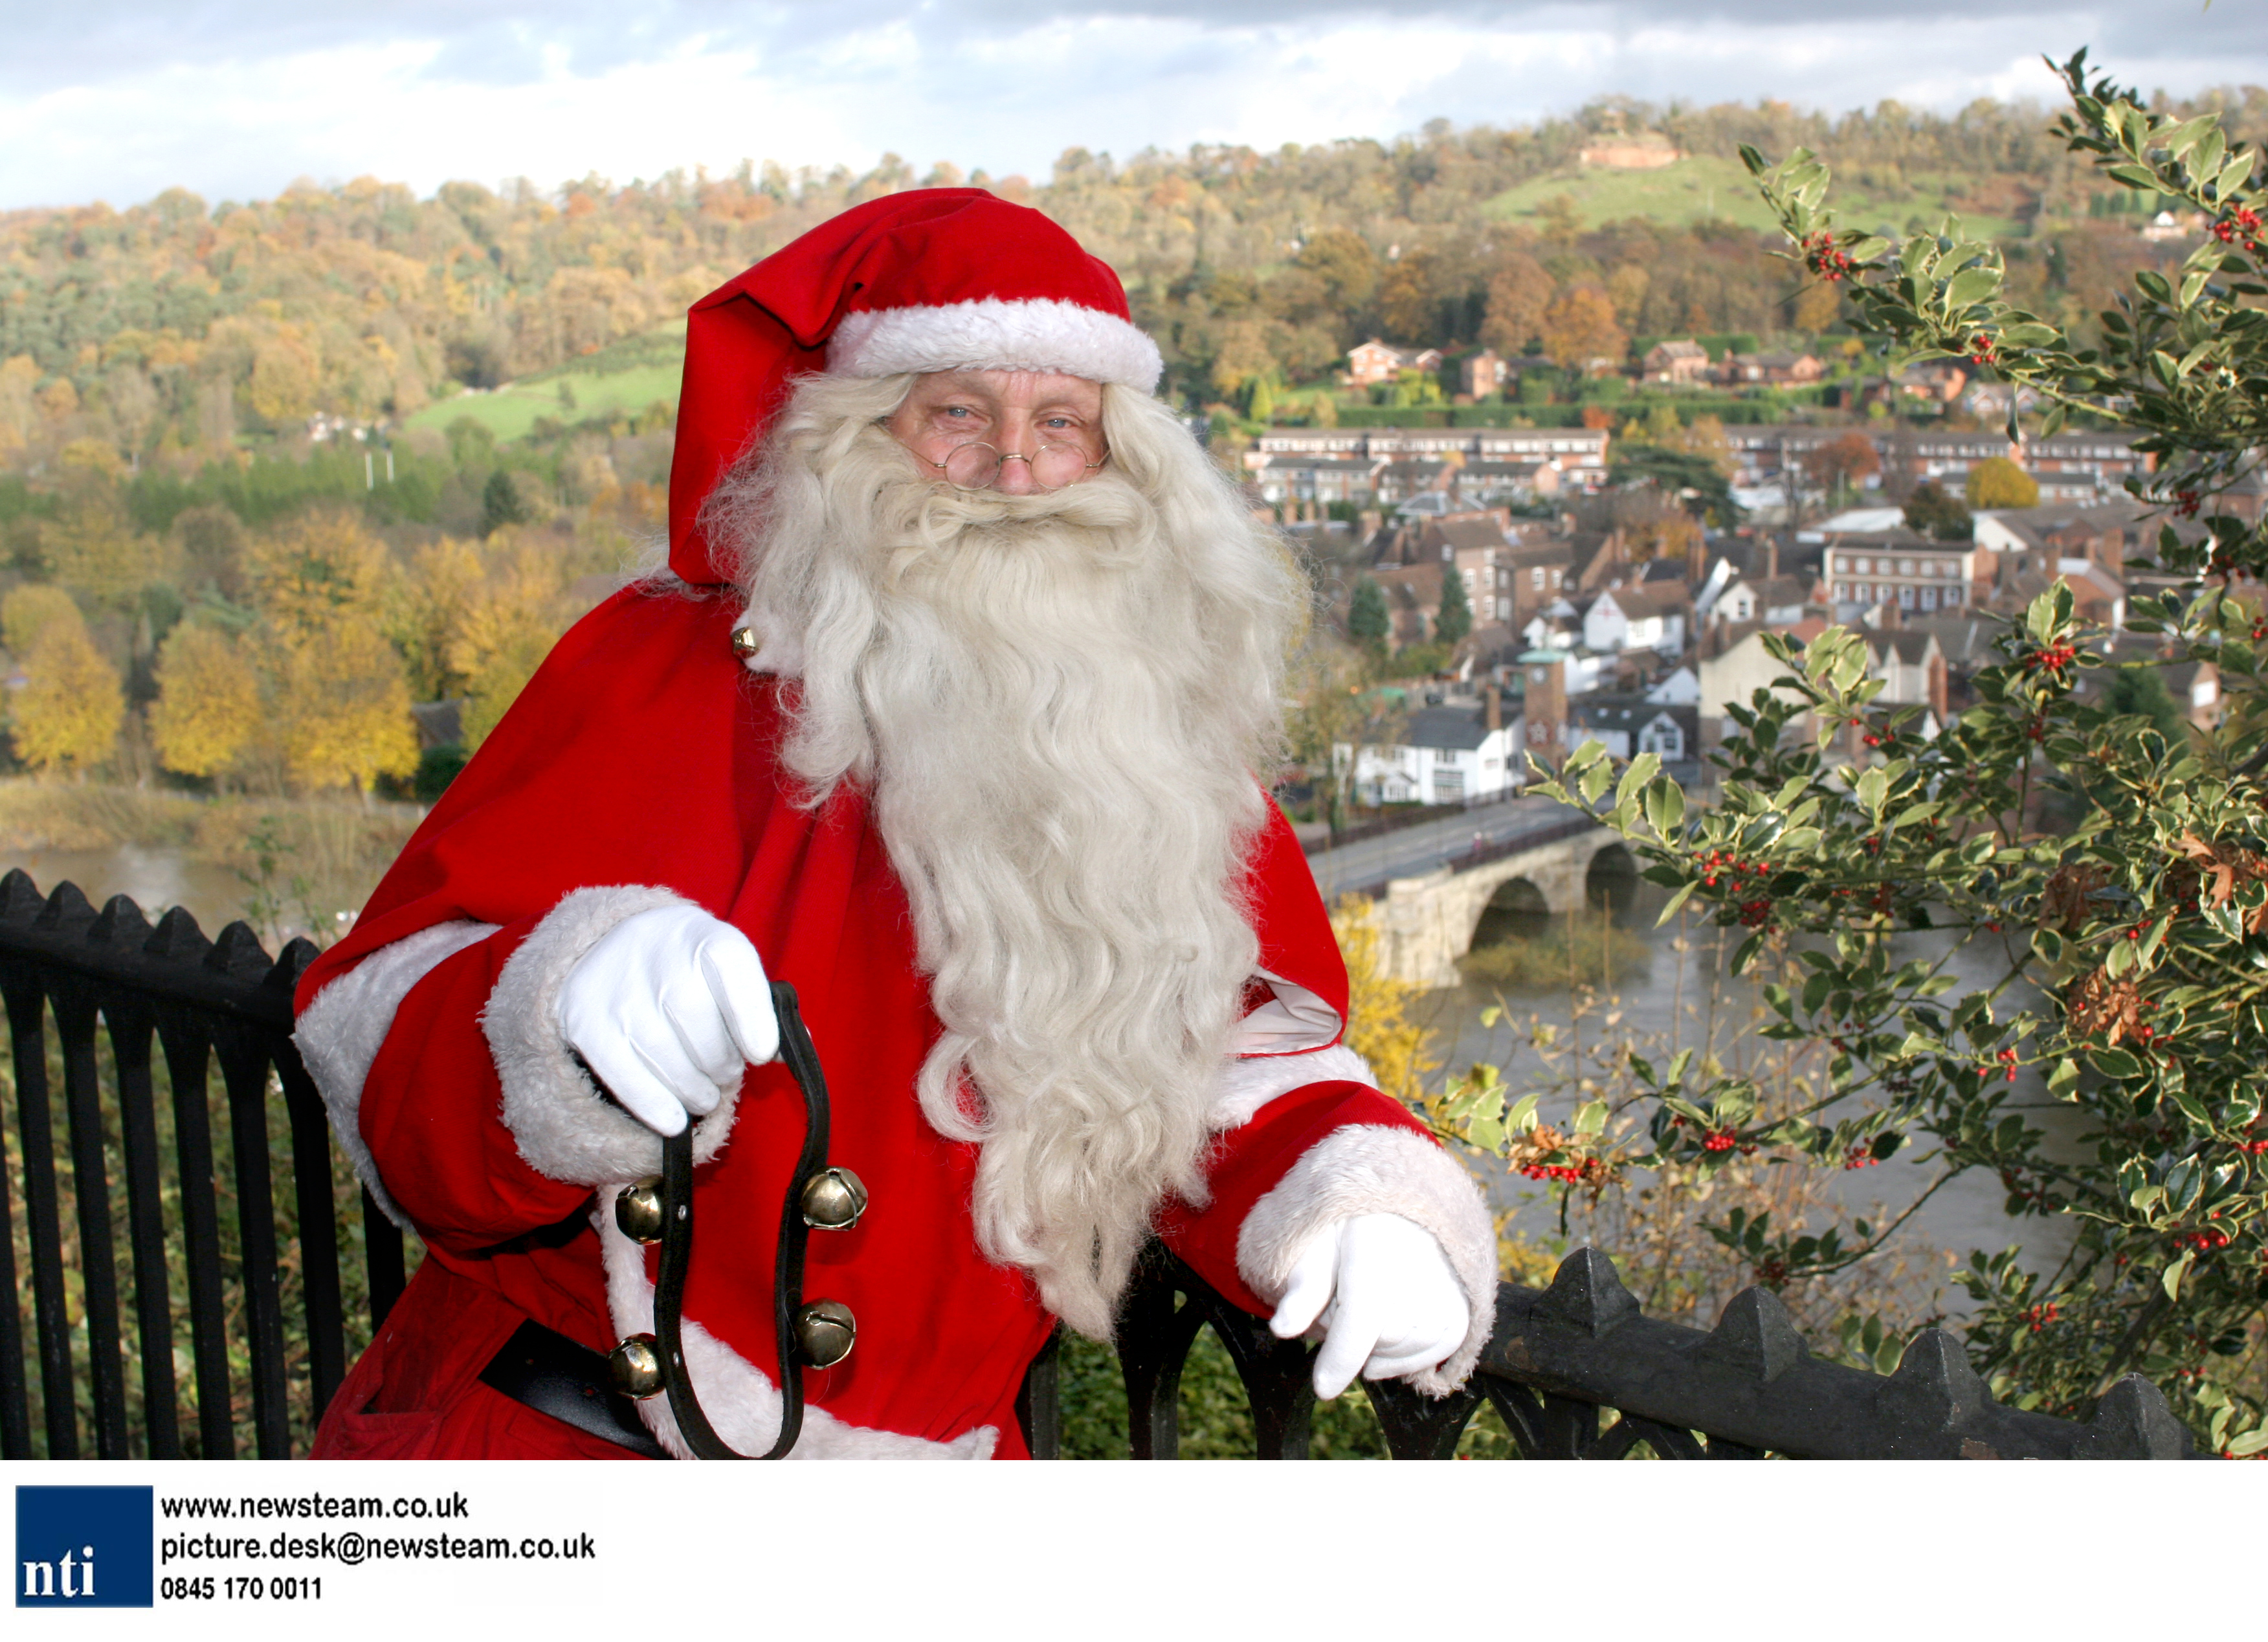 Is this the longest serving Santa in the UK?